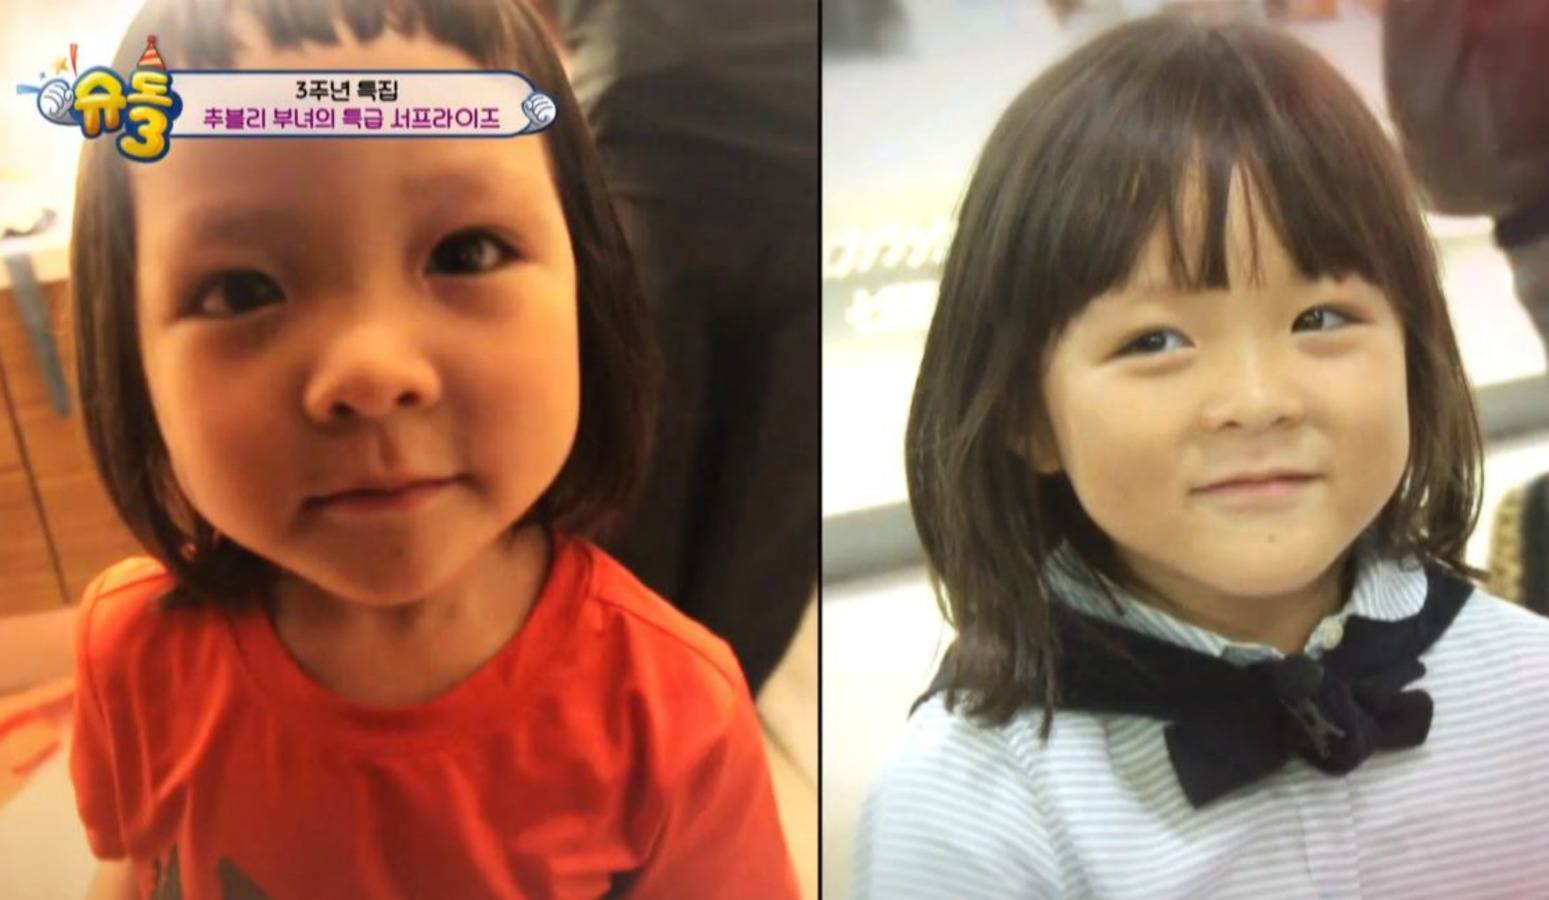 Choo Sunghoons daughter is going viral for her long legs